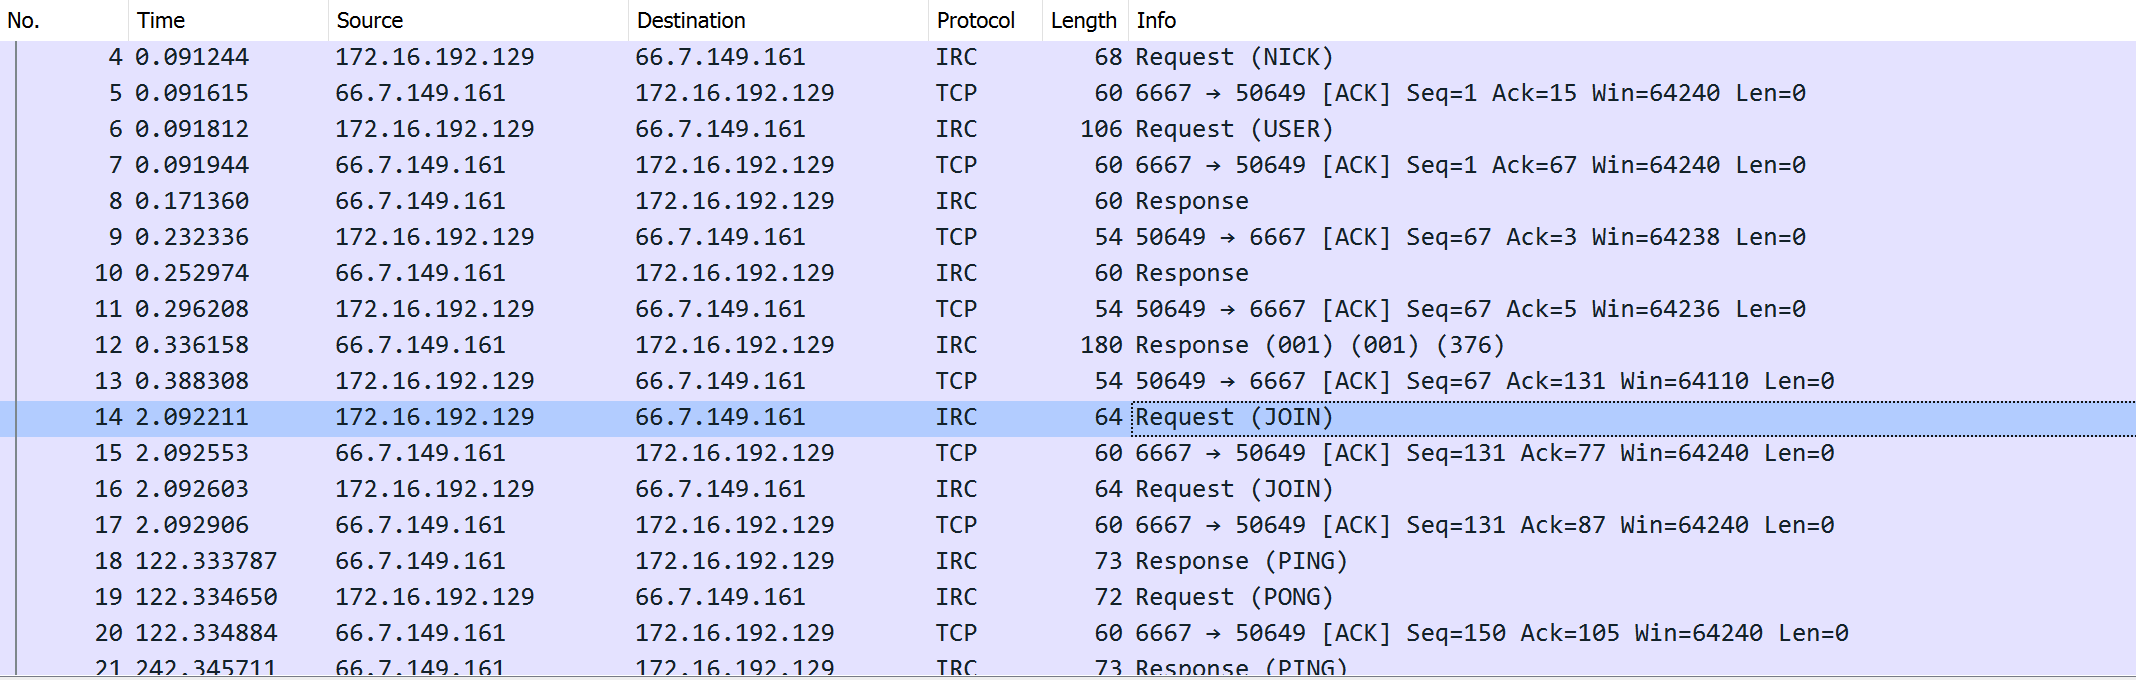 Once the malicious script in the previous figure is executed, it connects to an IRC-based command-and-control server, joins the IRC channel #afk, and responds to the PING from the server, as in the traffic shown here.